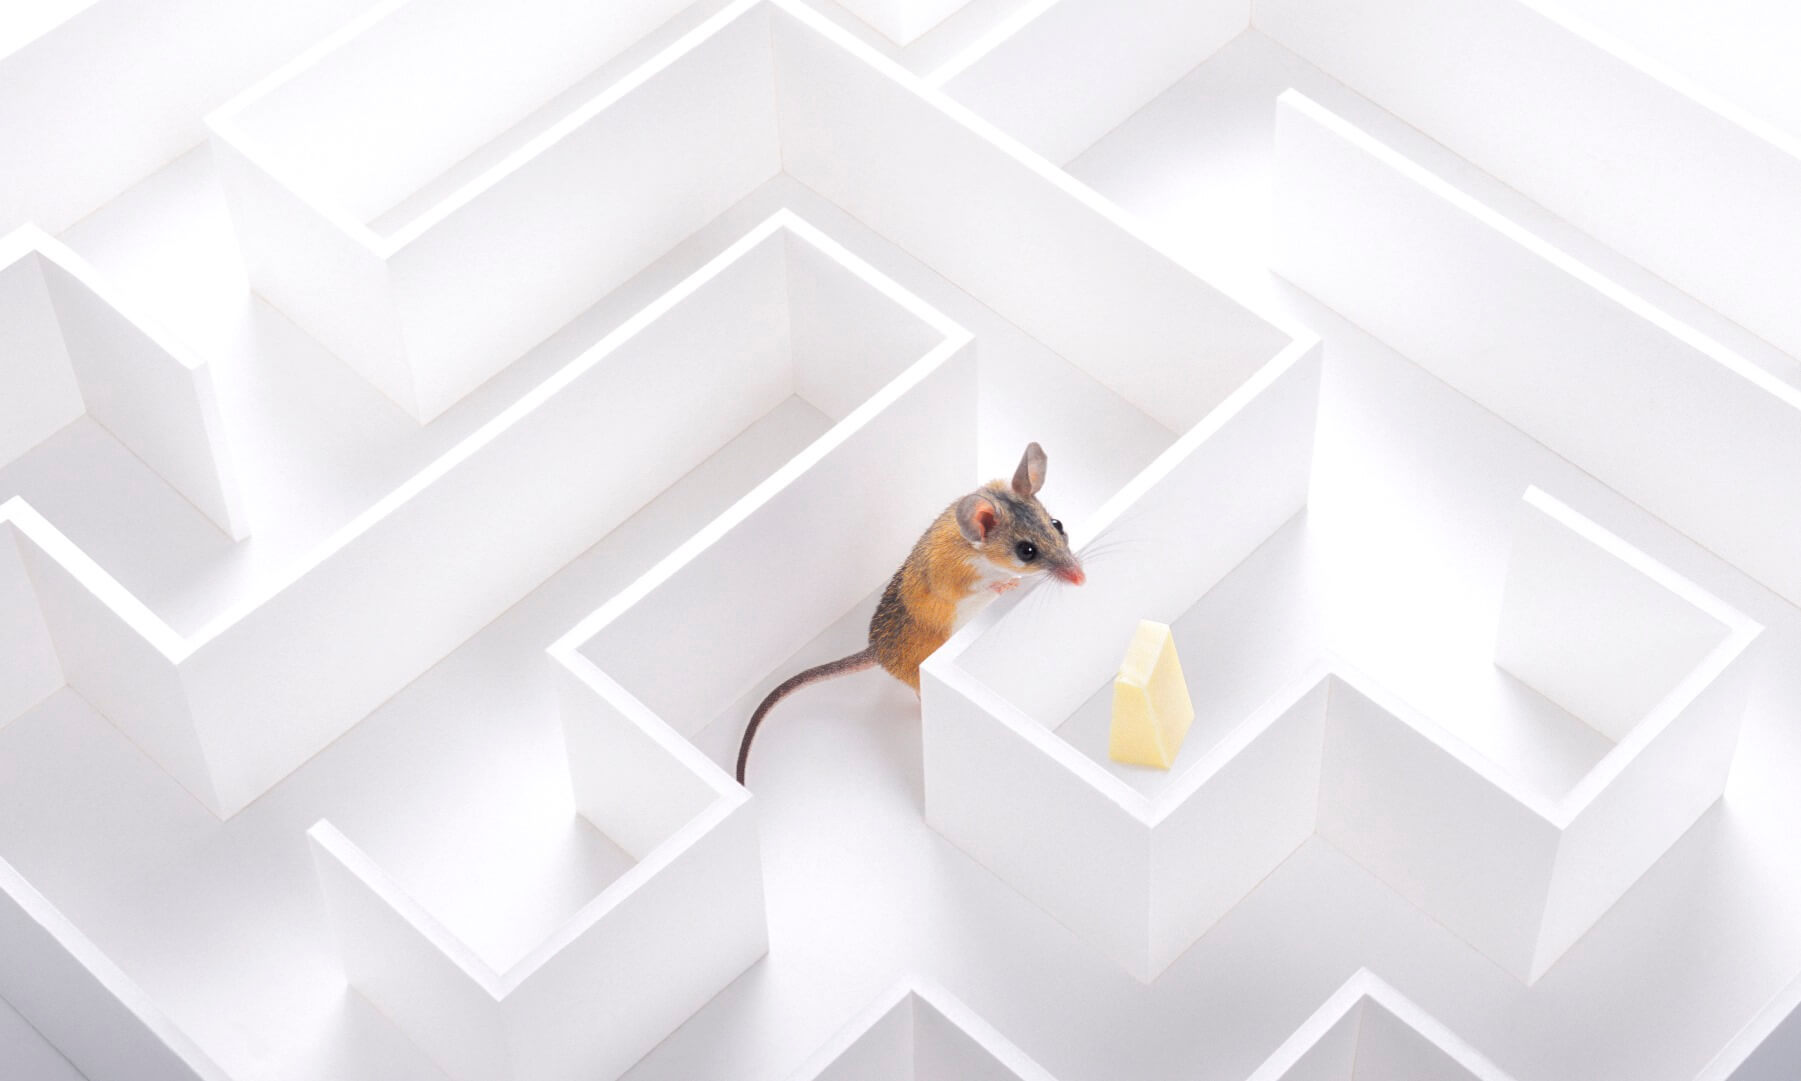 Rodent and cheese in a maze